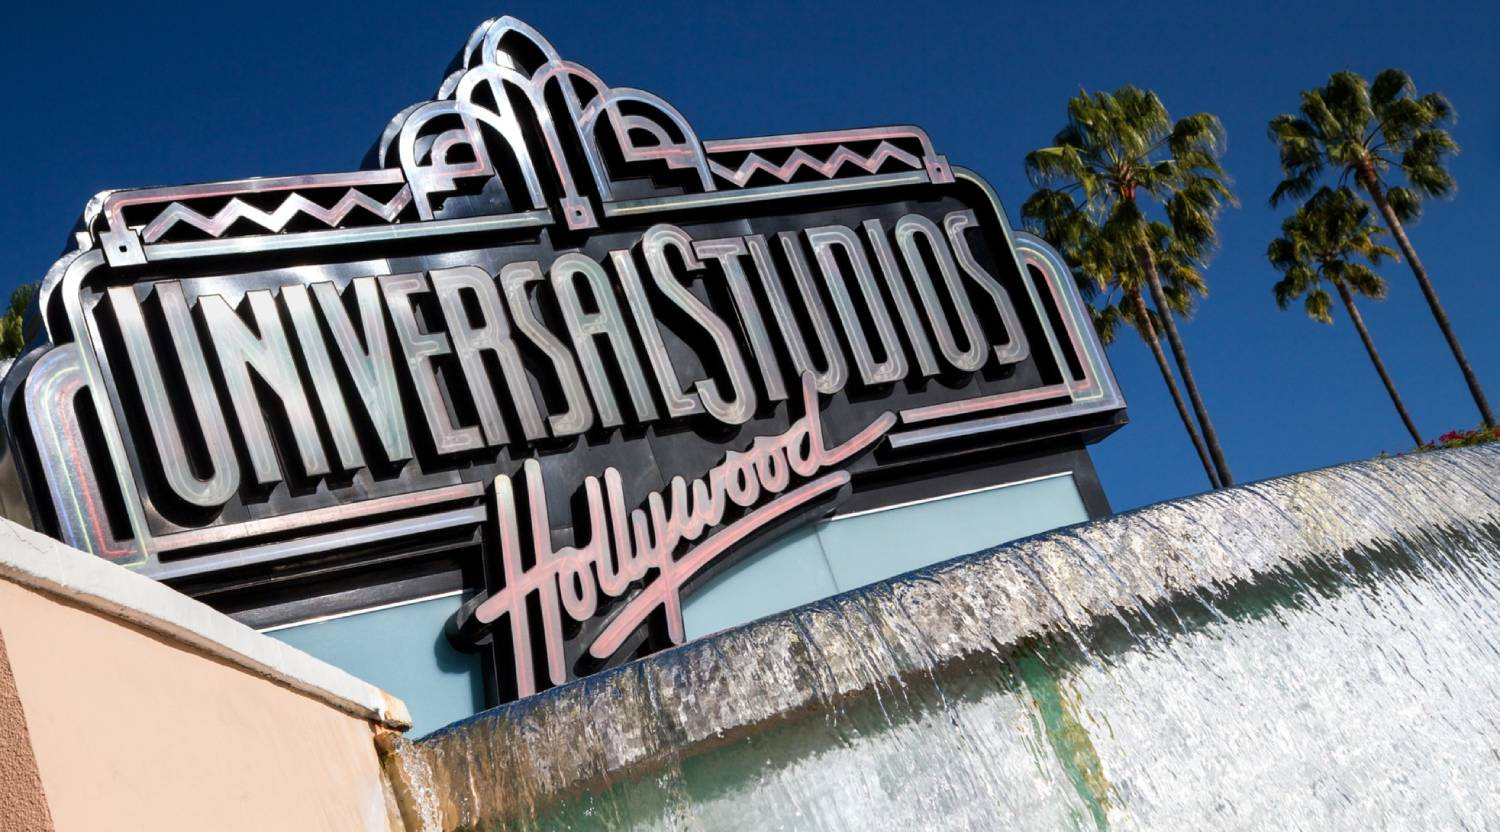 Universal Studios Hollywood - Things To Do In Los Angeles